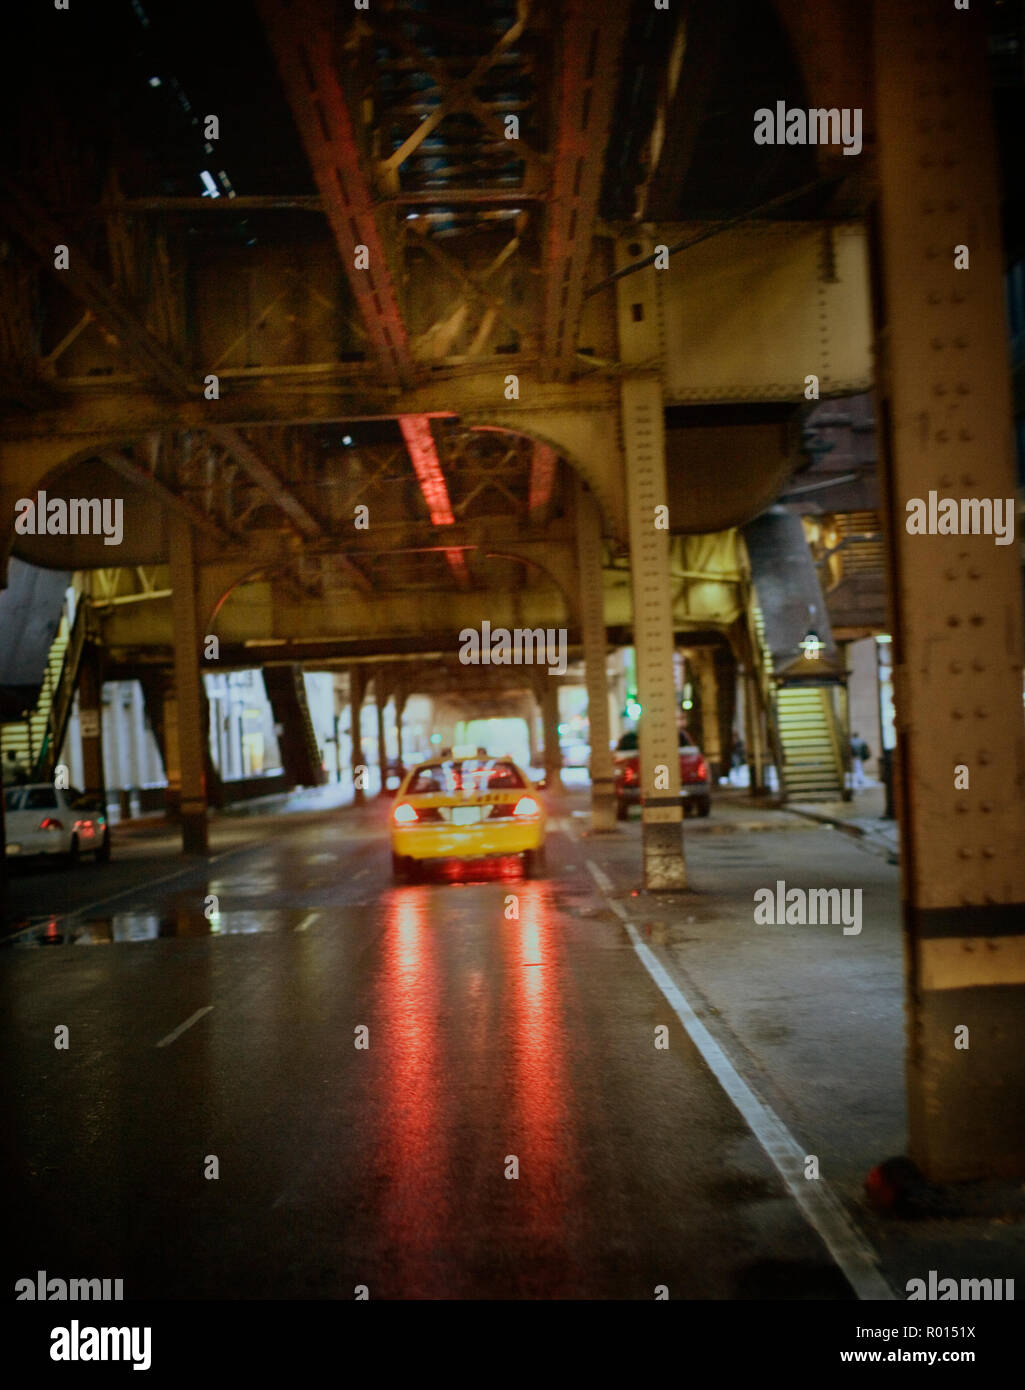 View of a cab moving on a wet road. Stock Photo